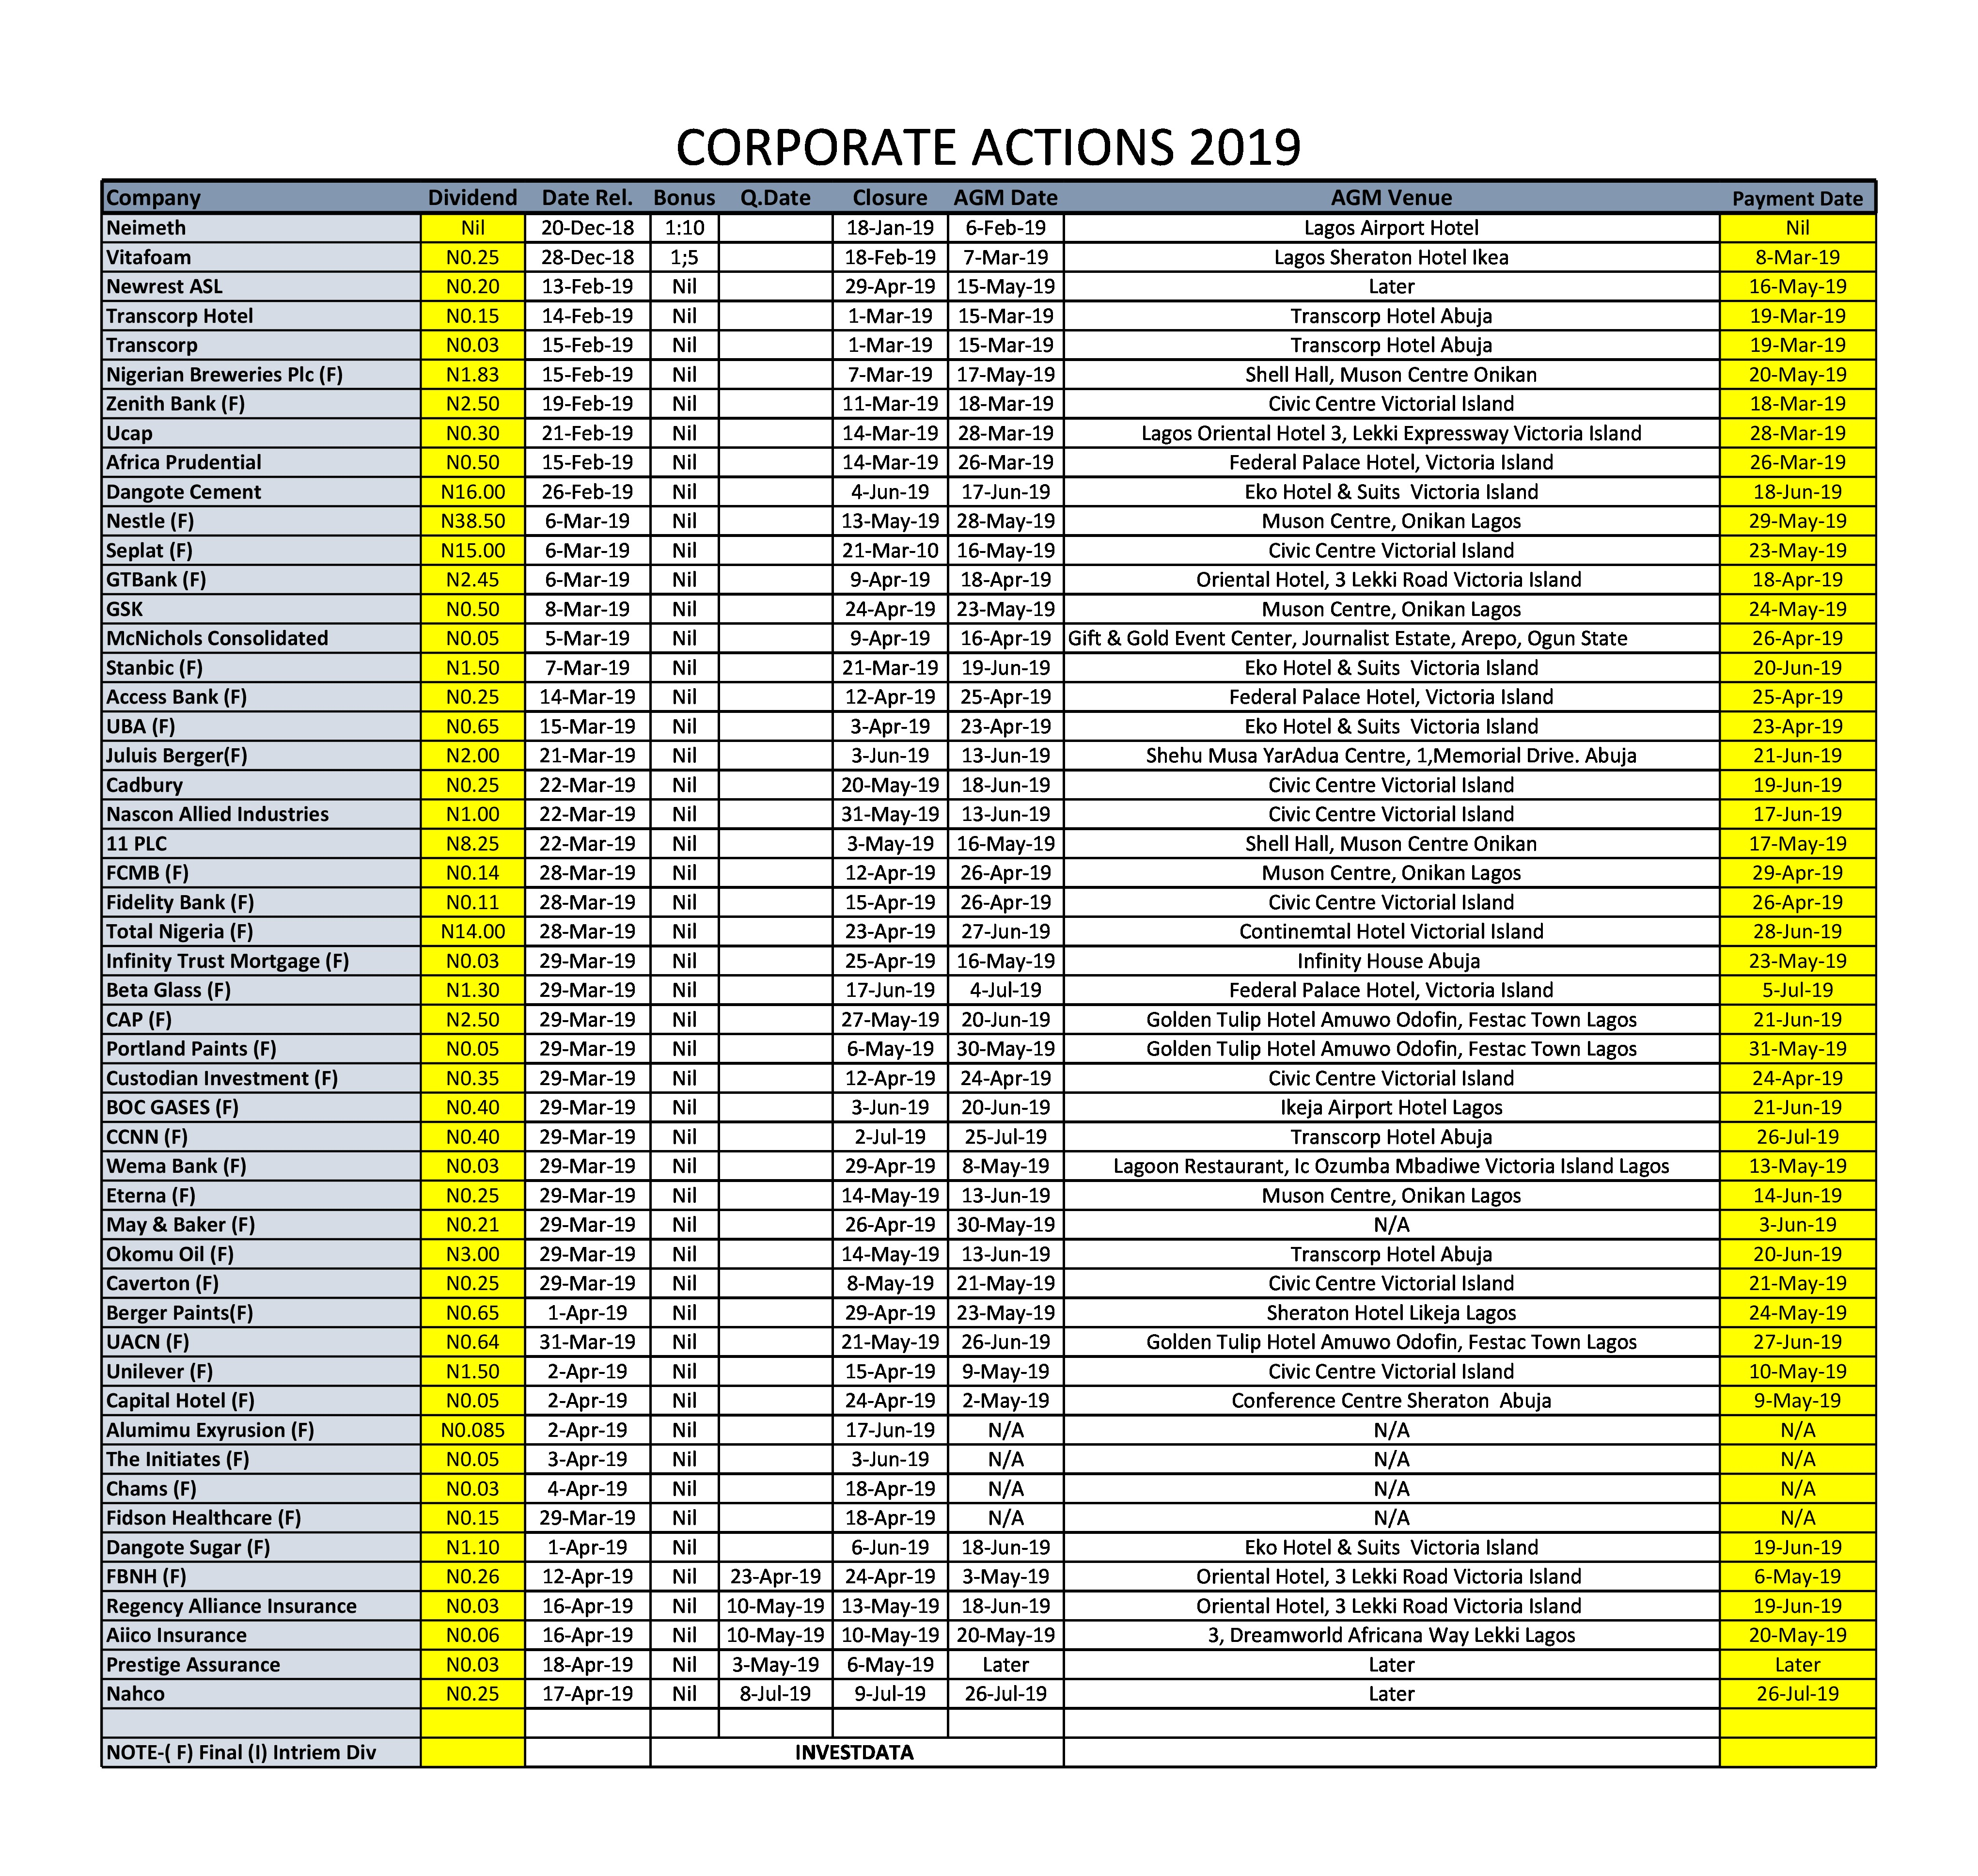 Investdata Corporate Actions As At Thursday, April 18, 2019